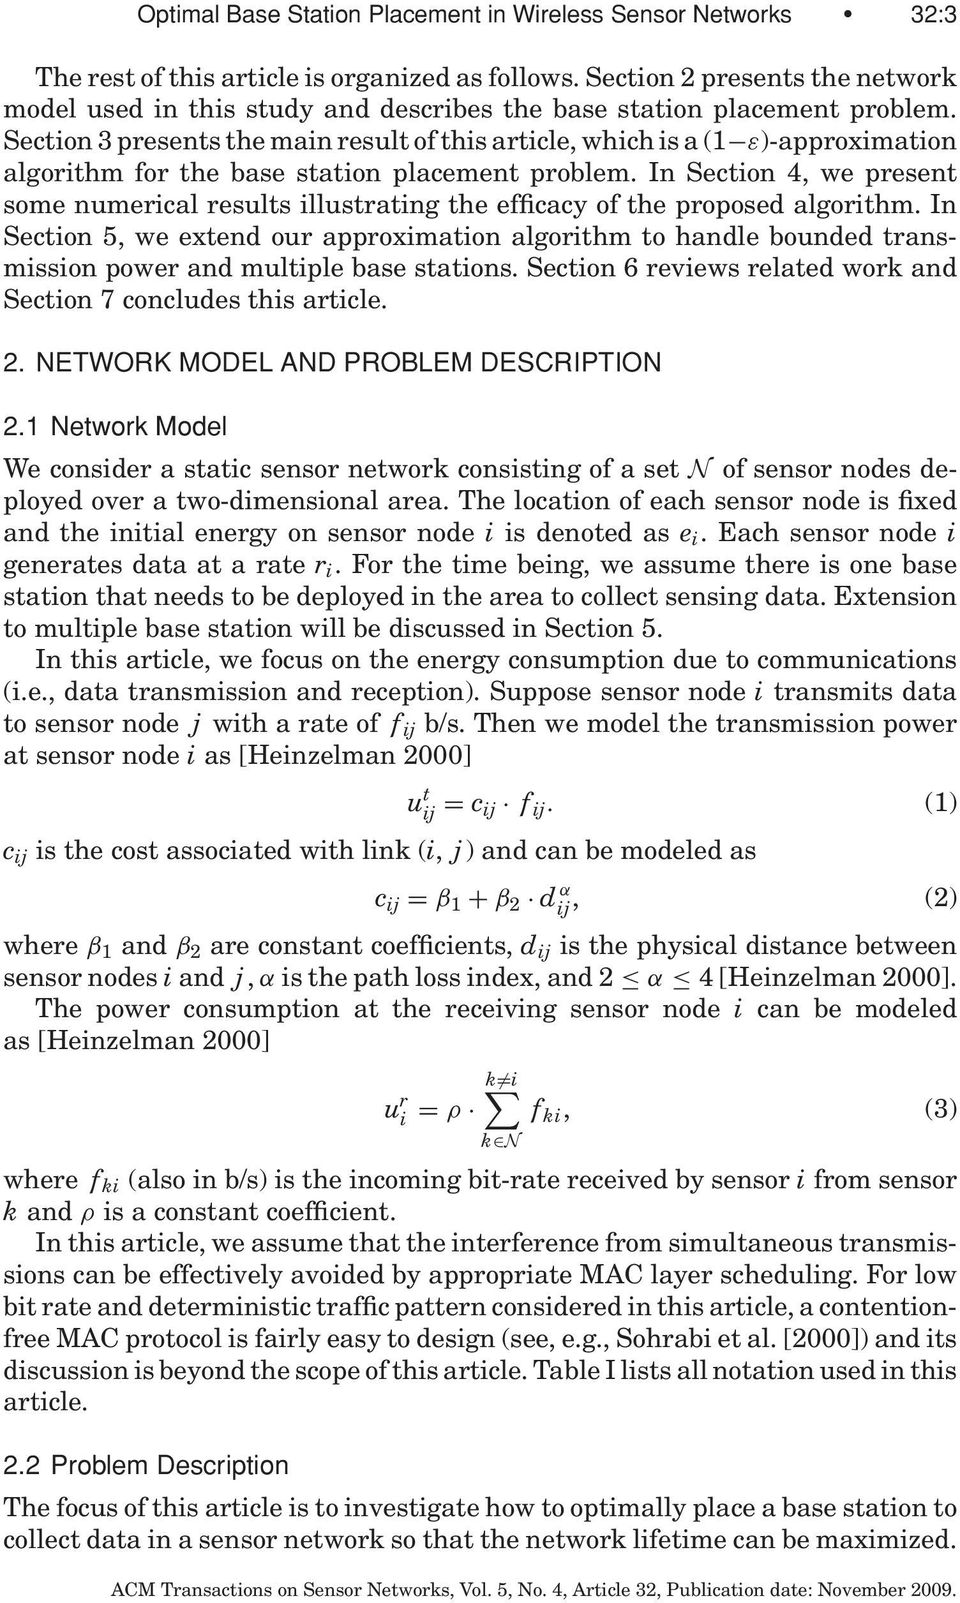 Section 3 presents the main result of this article, which is a (1 ε)-approximation algorithm for the base station placement problem.